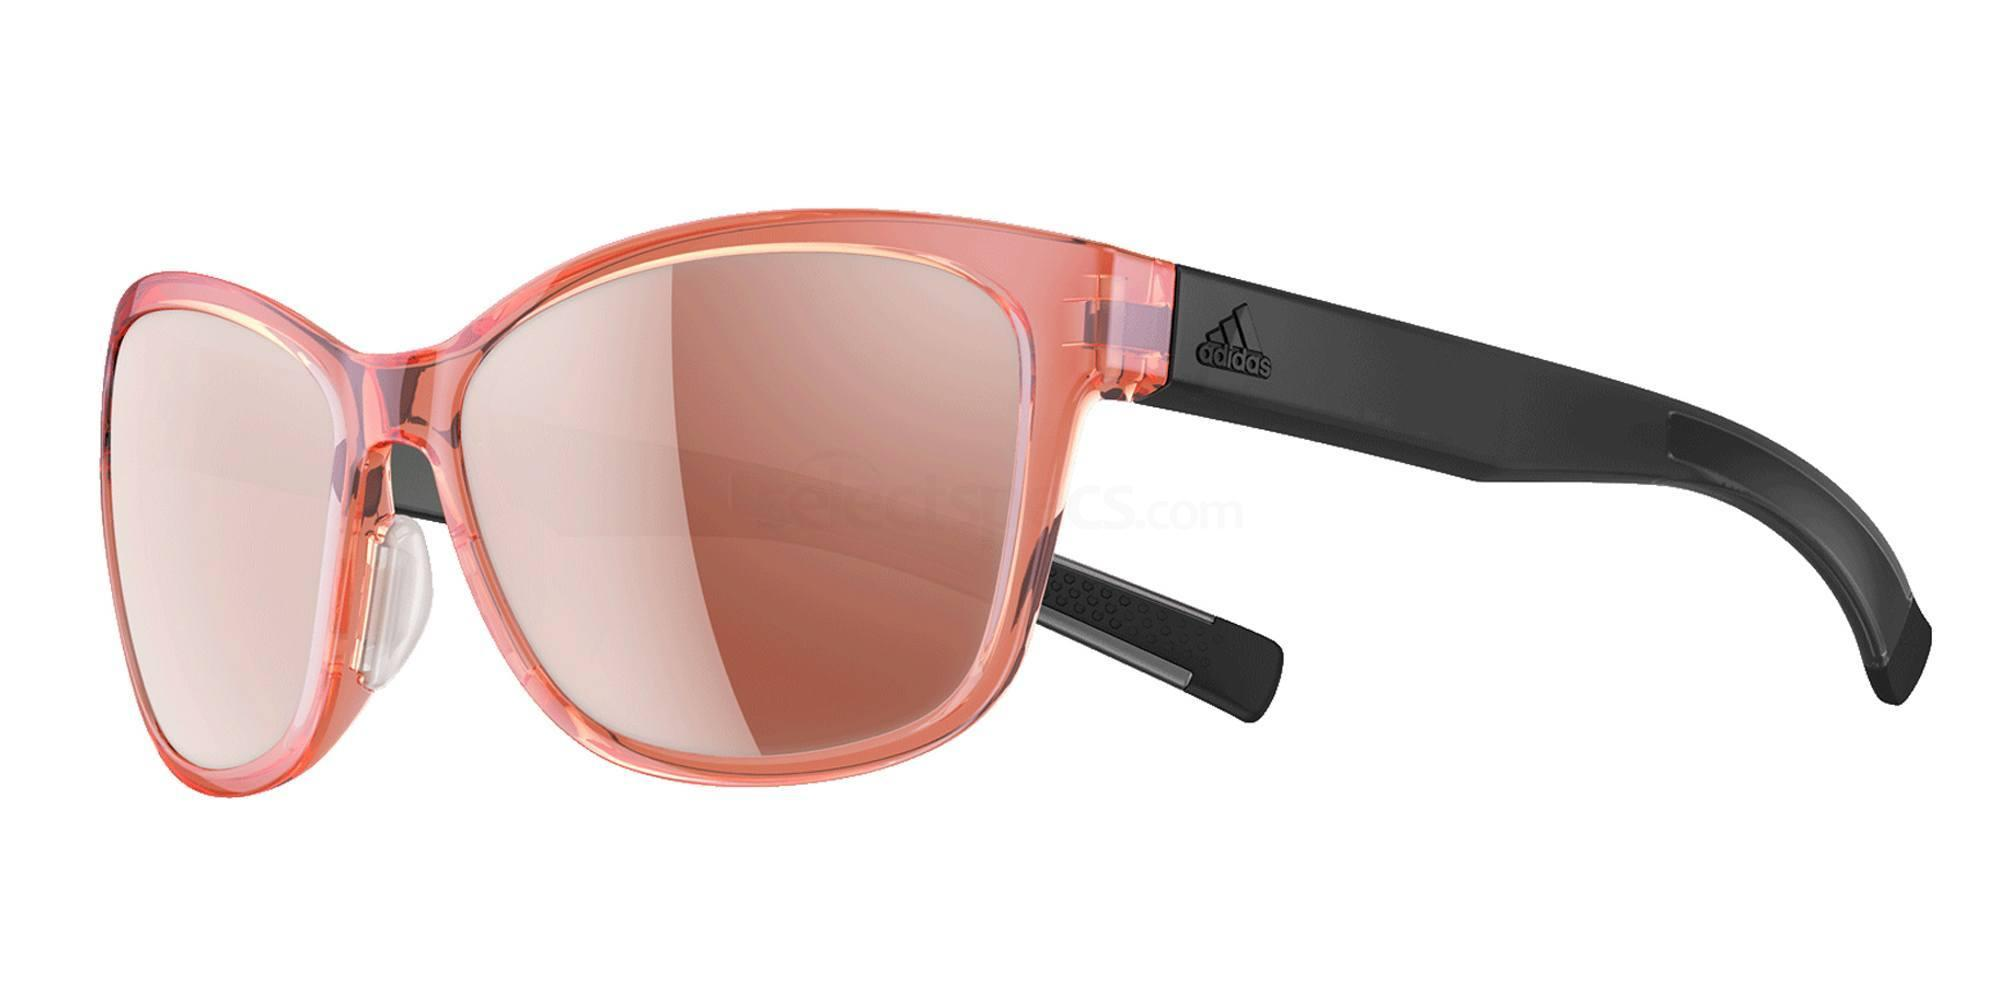 a428 00 6055 a428 excalate Sunglasses, Adidas